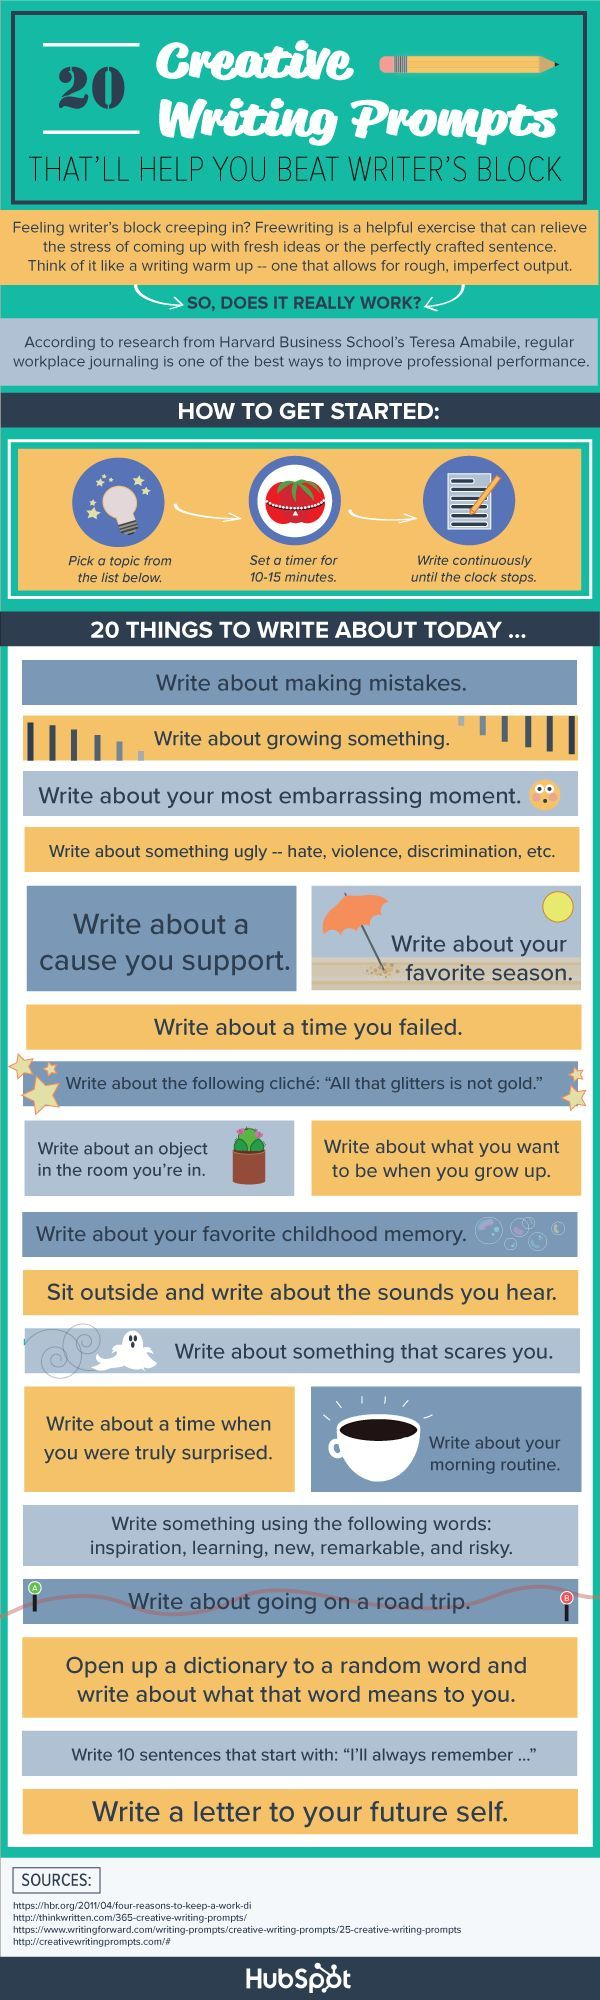 Infographic: 20 ways to conquer writer's block -- Getting out of a creative funk can prove difficult, even in the best of circumstances. Try these prompts and strategies to get the words flowing again—and meet your tightest deadlines.